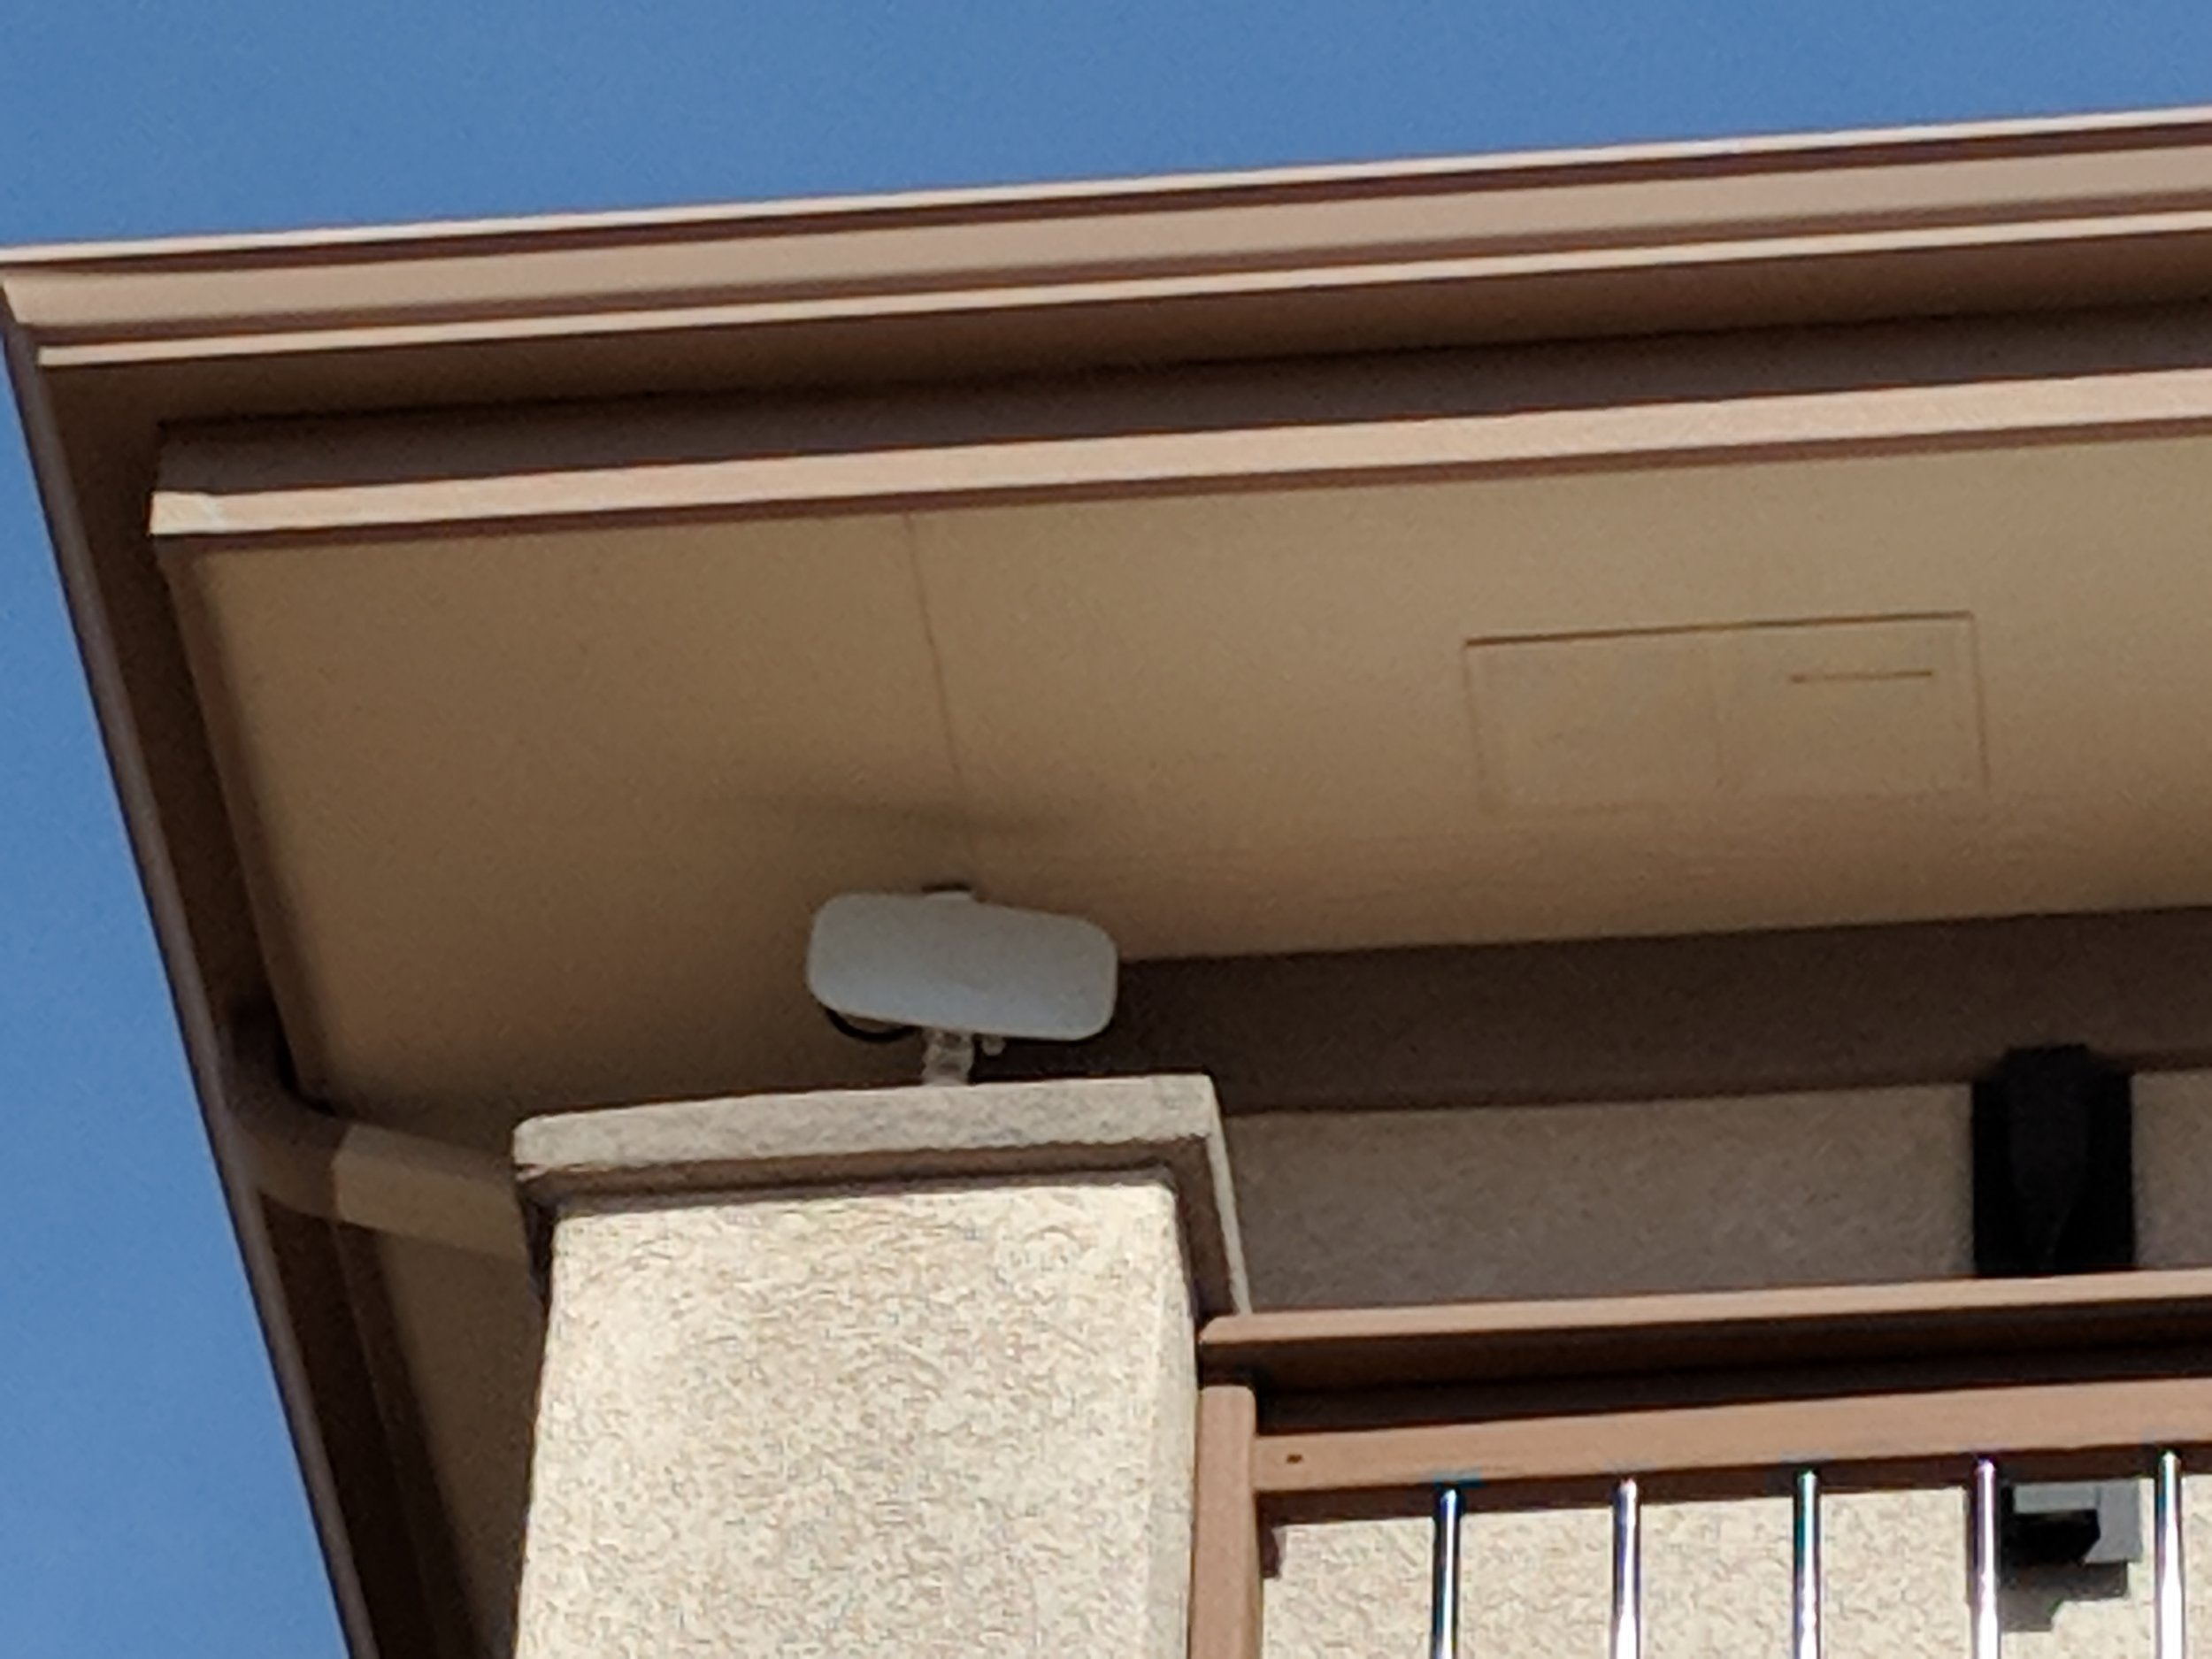 Flat radio mounted under the roofline with a short bar